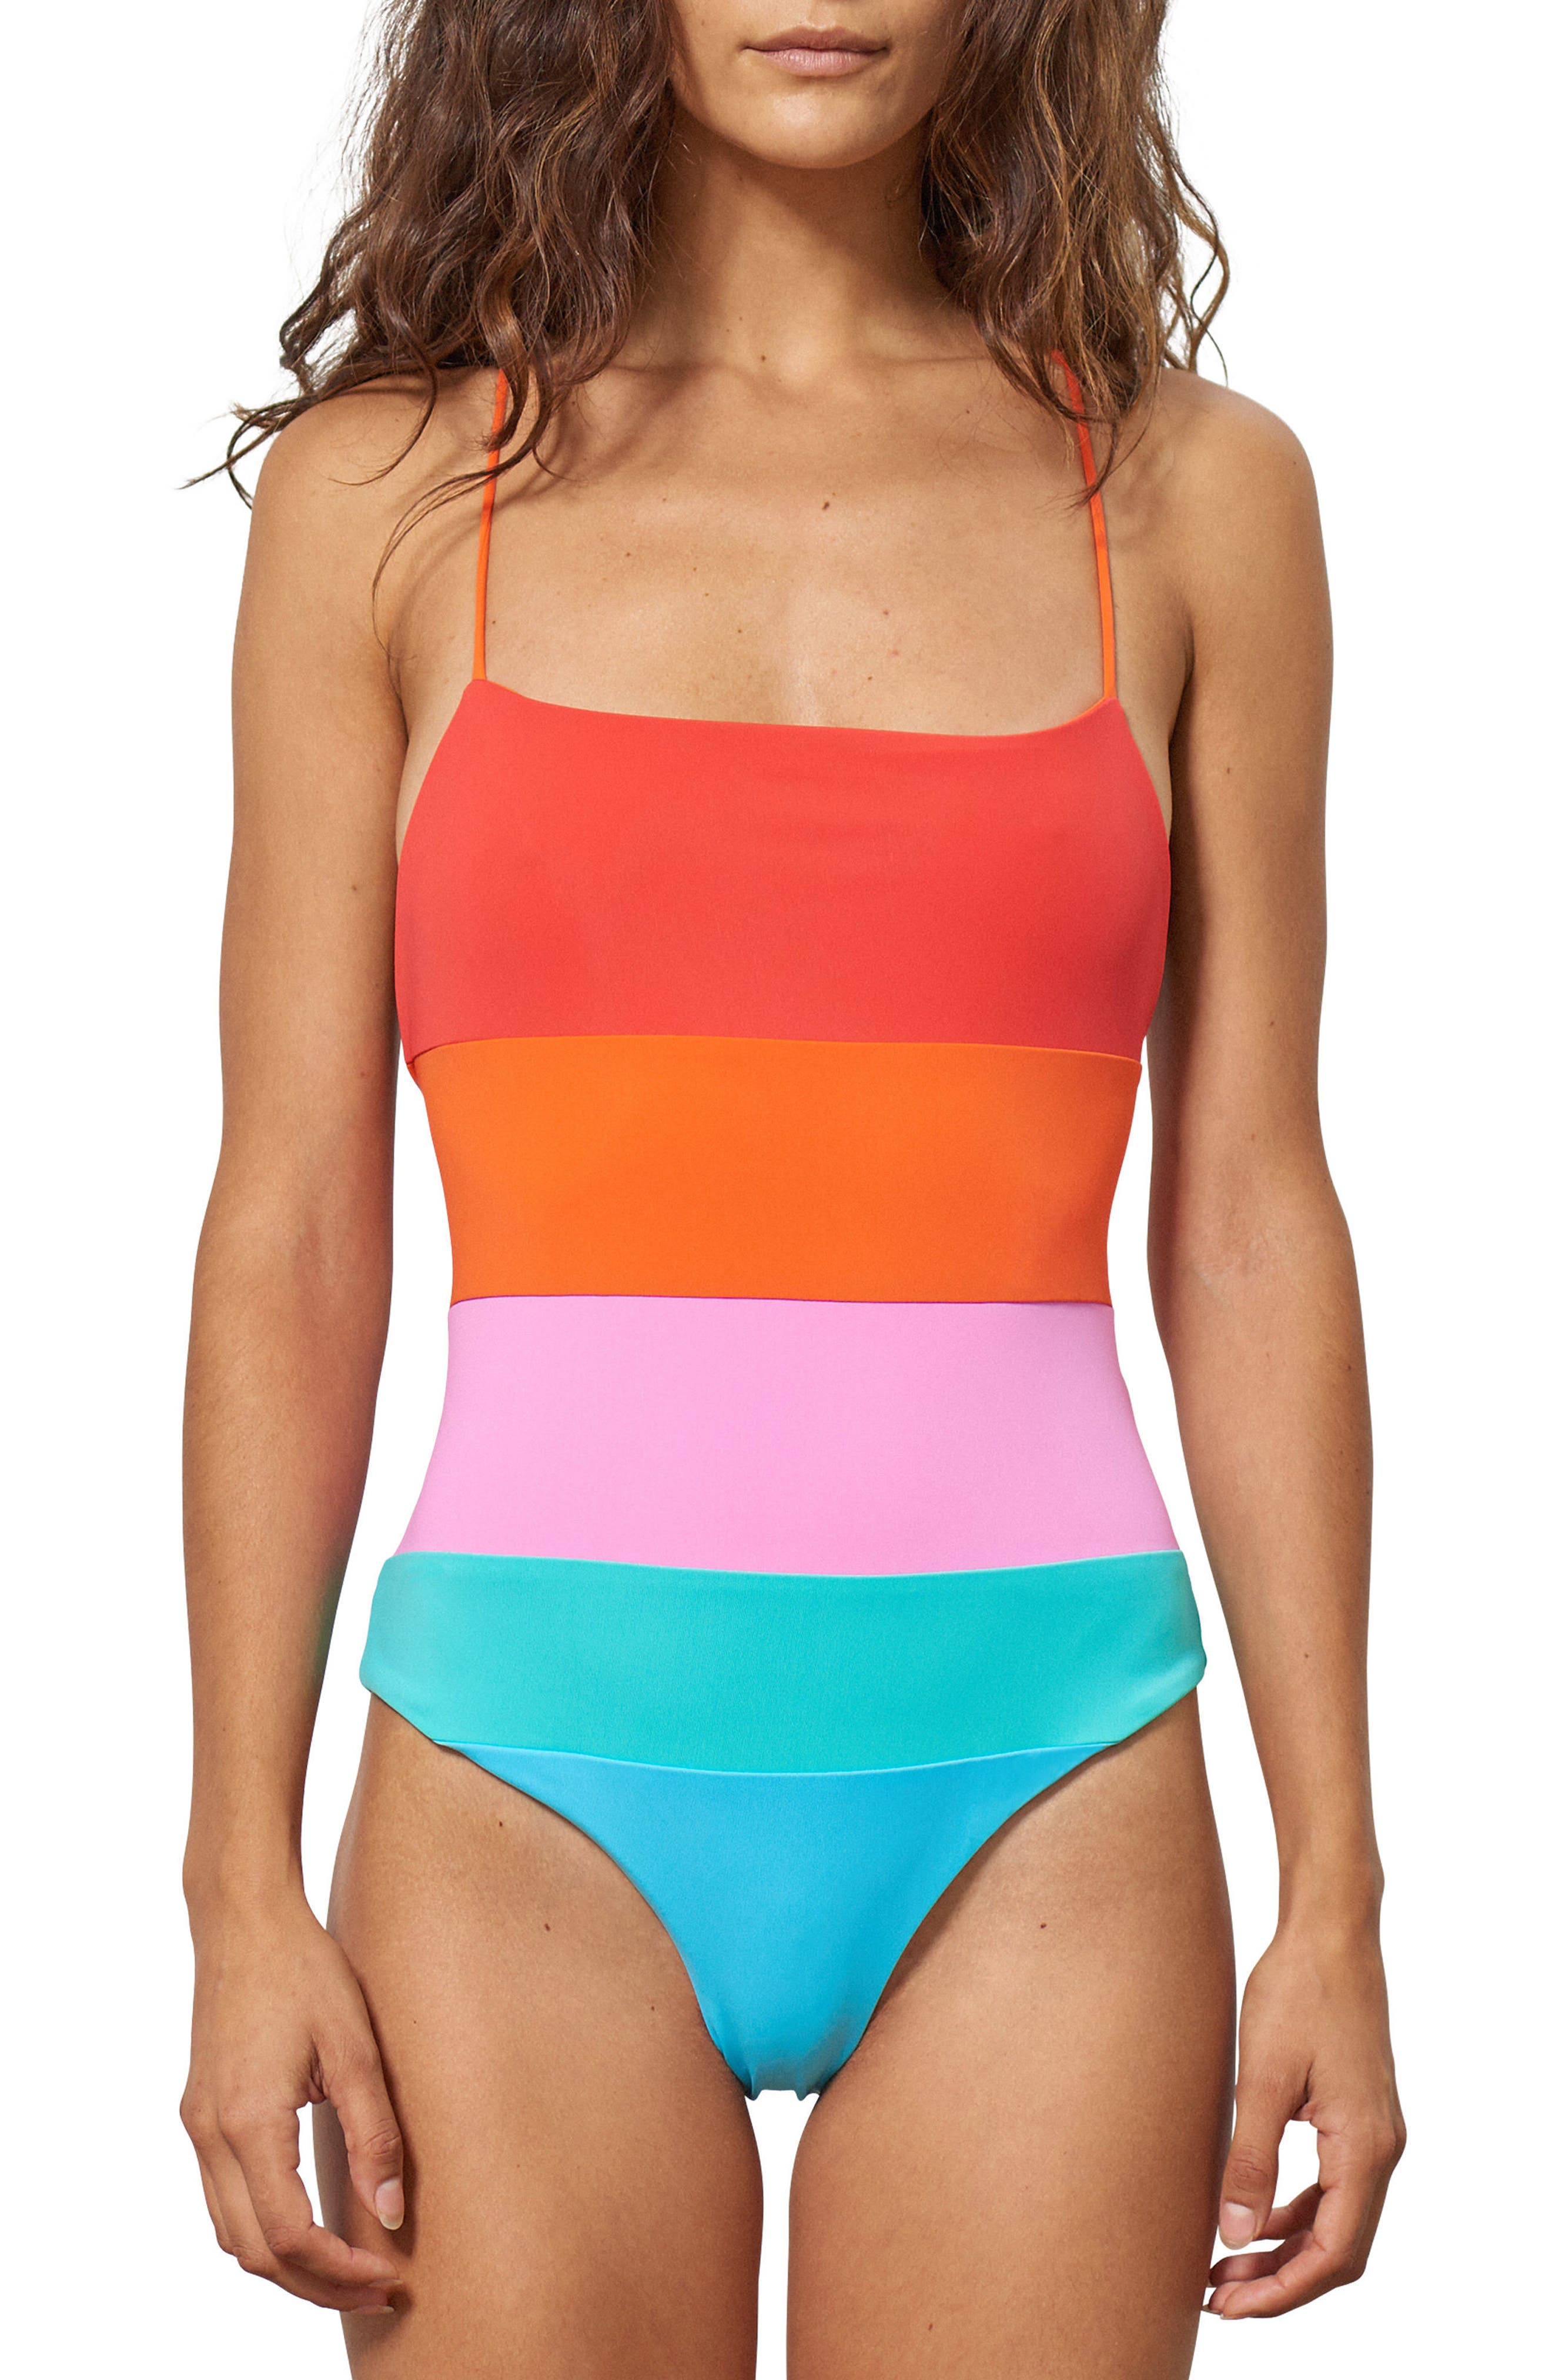 Olympia One-Piece Swimsuit,                             Main thumbnail 1, color,                             801